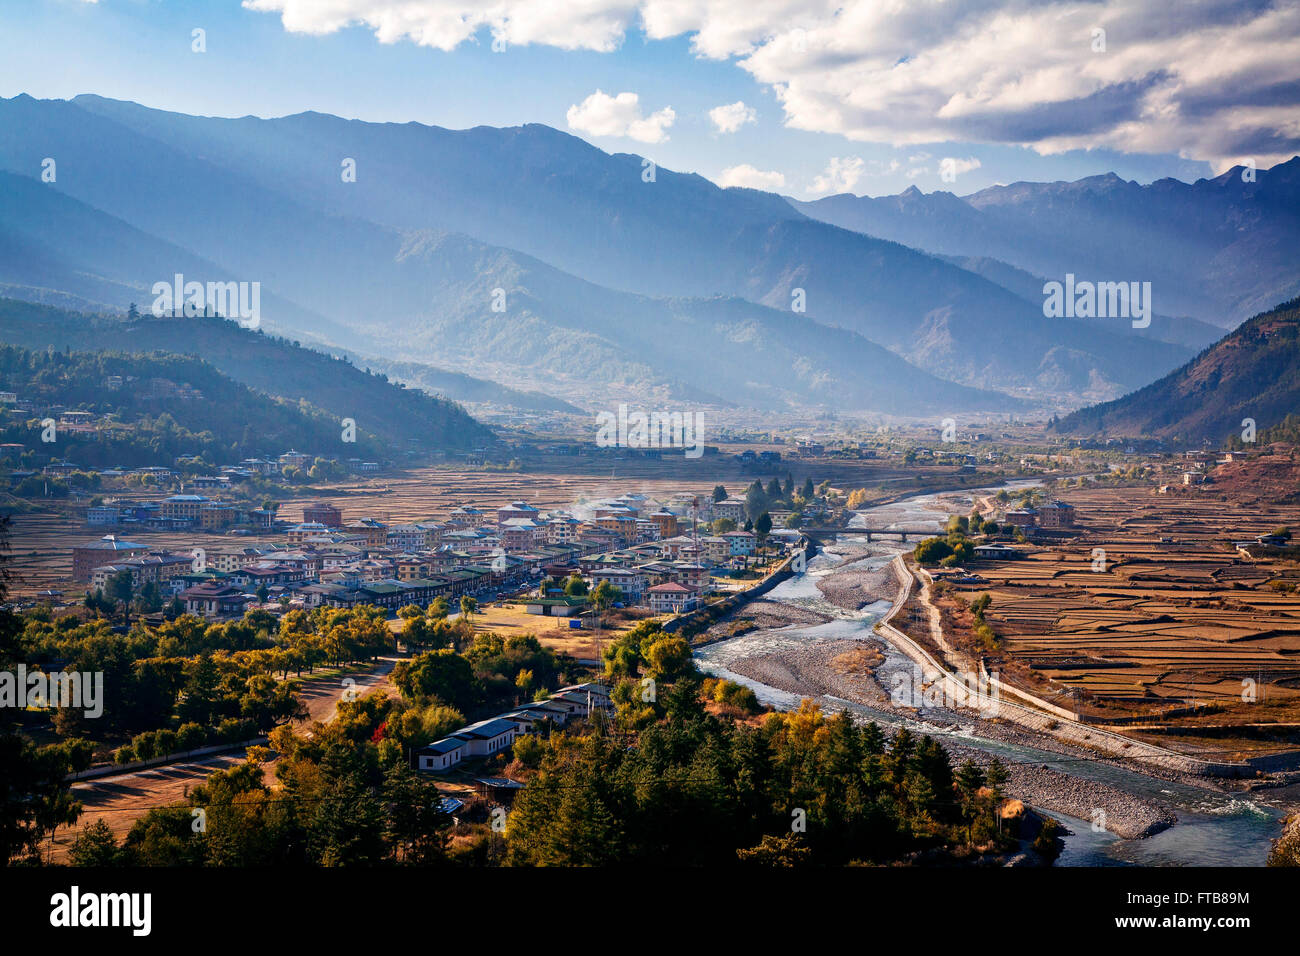 The city of Paro and Paro Valley in western Bhutan. - Stock Image